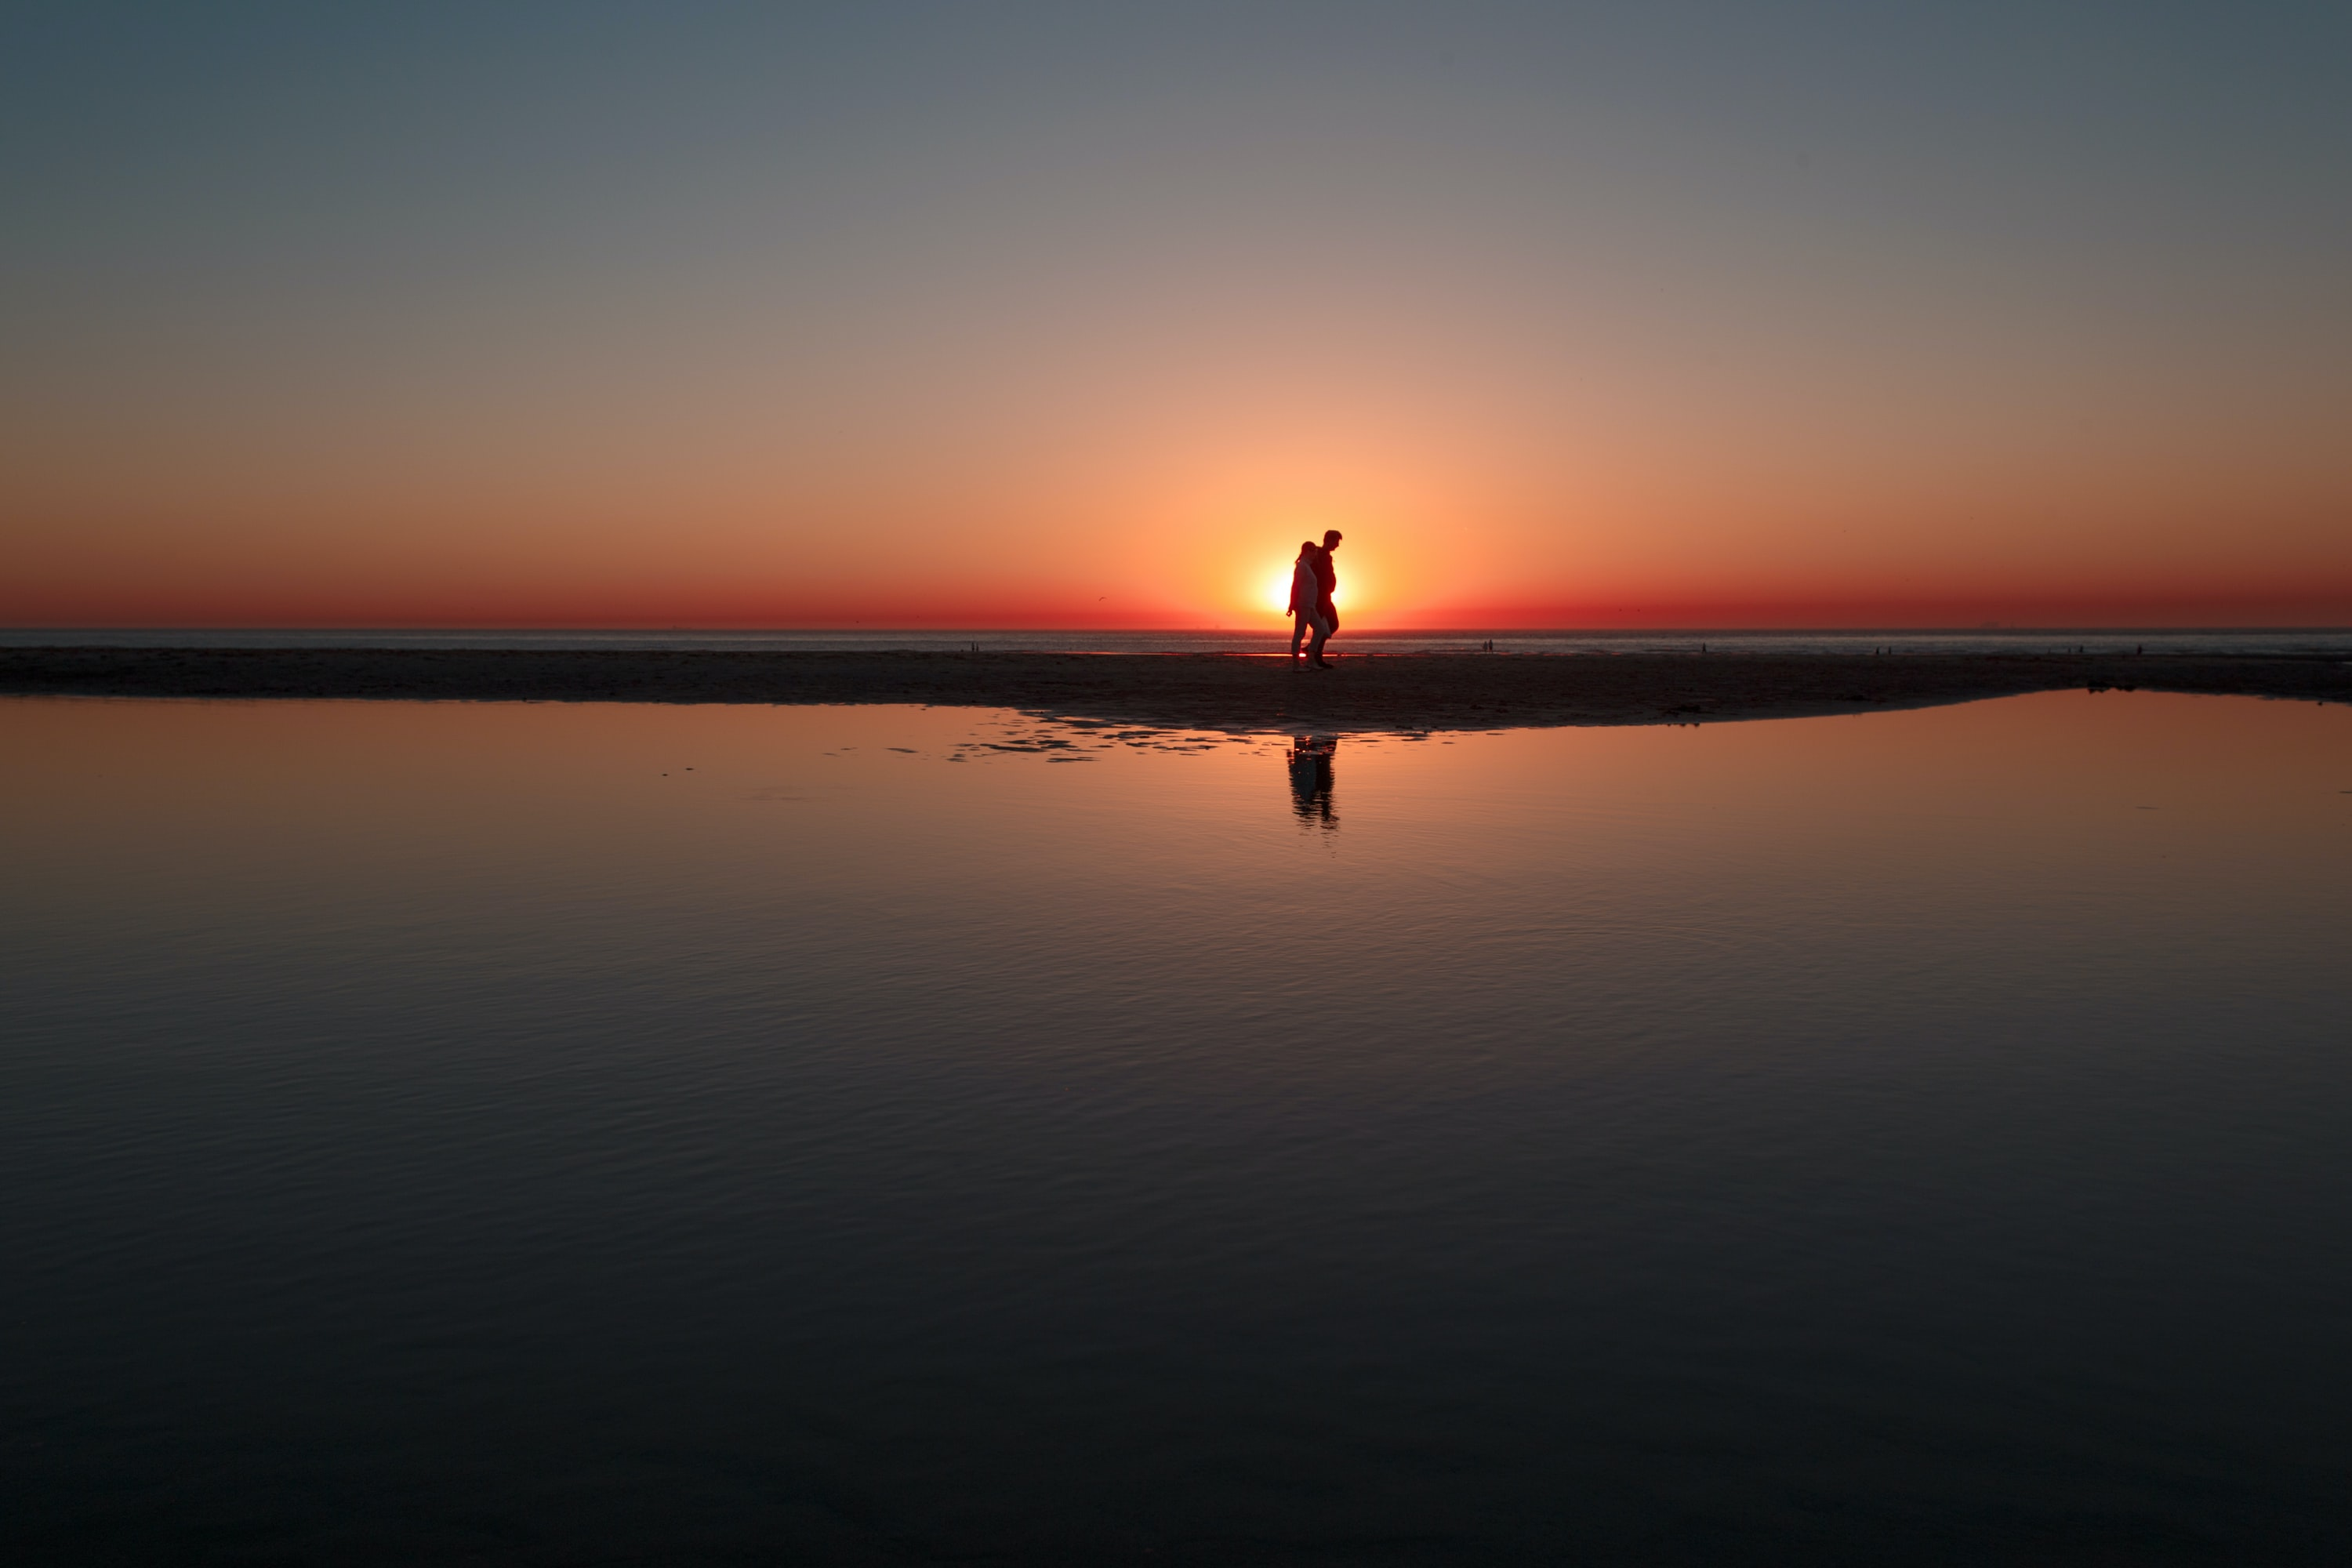 person standing across water during sunset